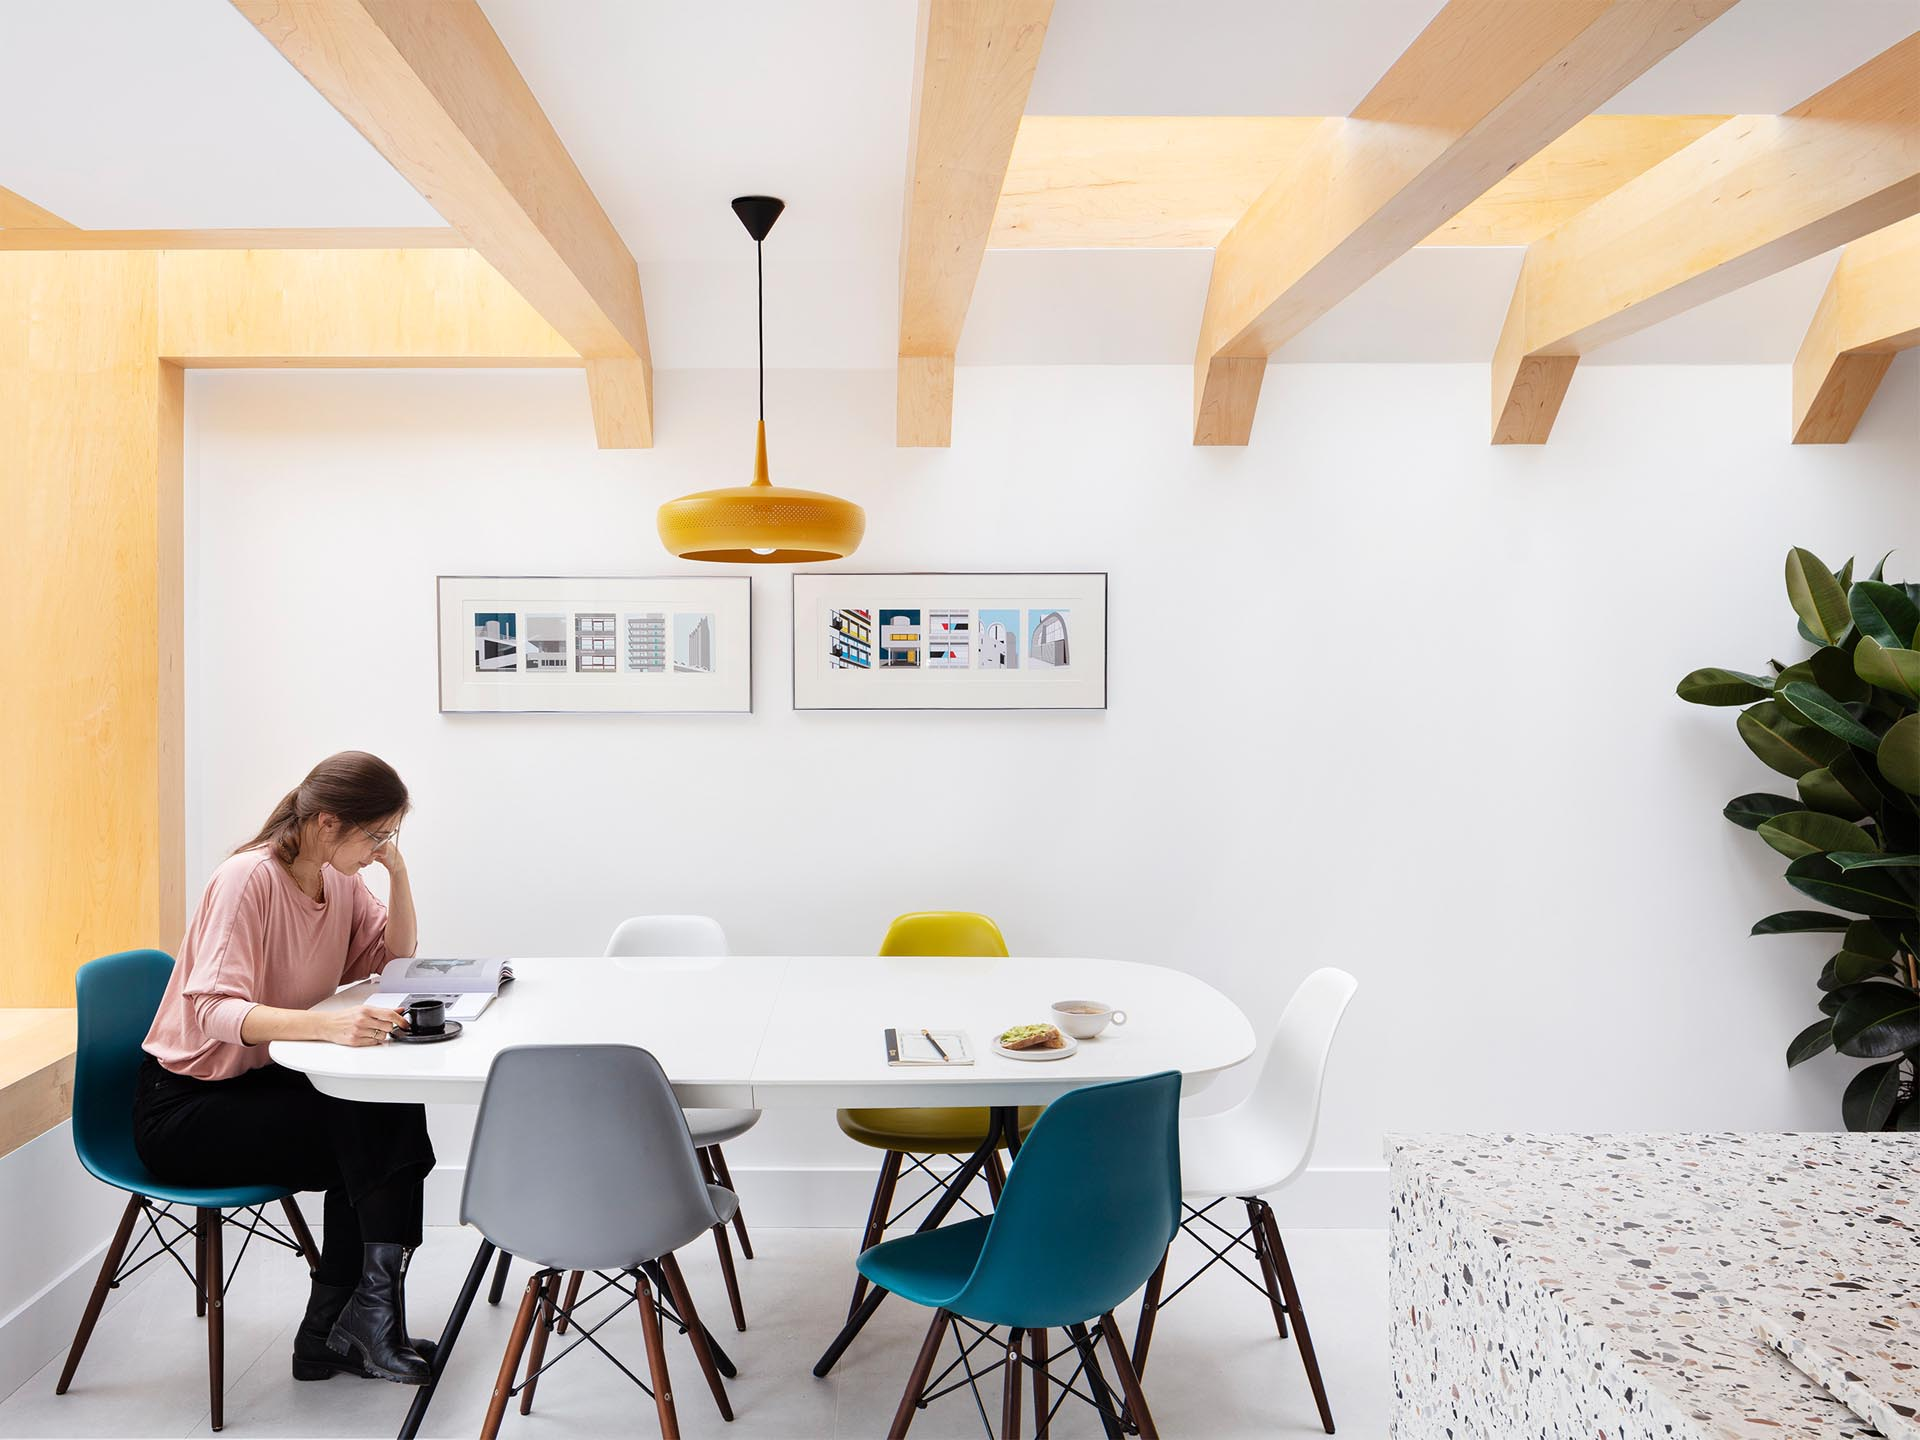 Warm wood beams are clearly visible against the white walls of the dining area.